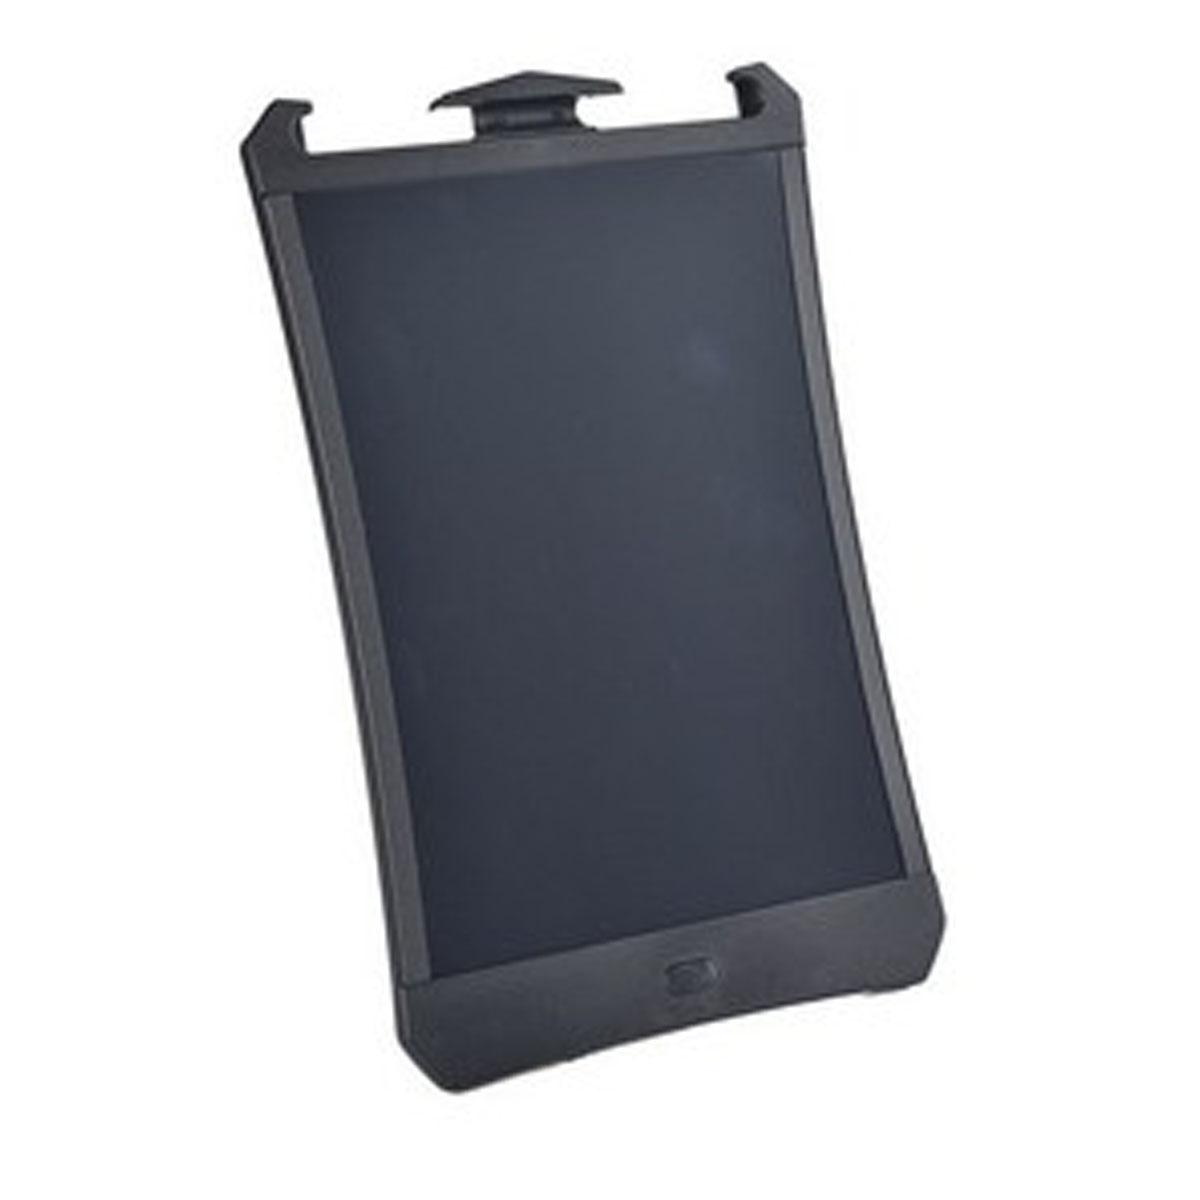 Mini Digital Slate Leotec Sketchboard Thick Eight Black 8.5 With Stroke Thick LCD Screen Stylus Pen Included Magnet